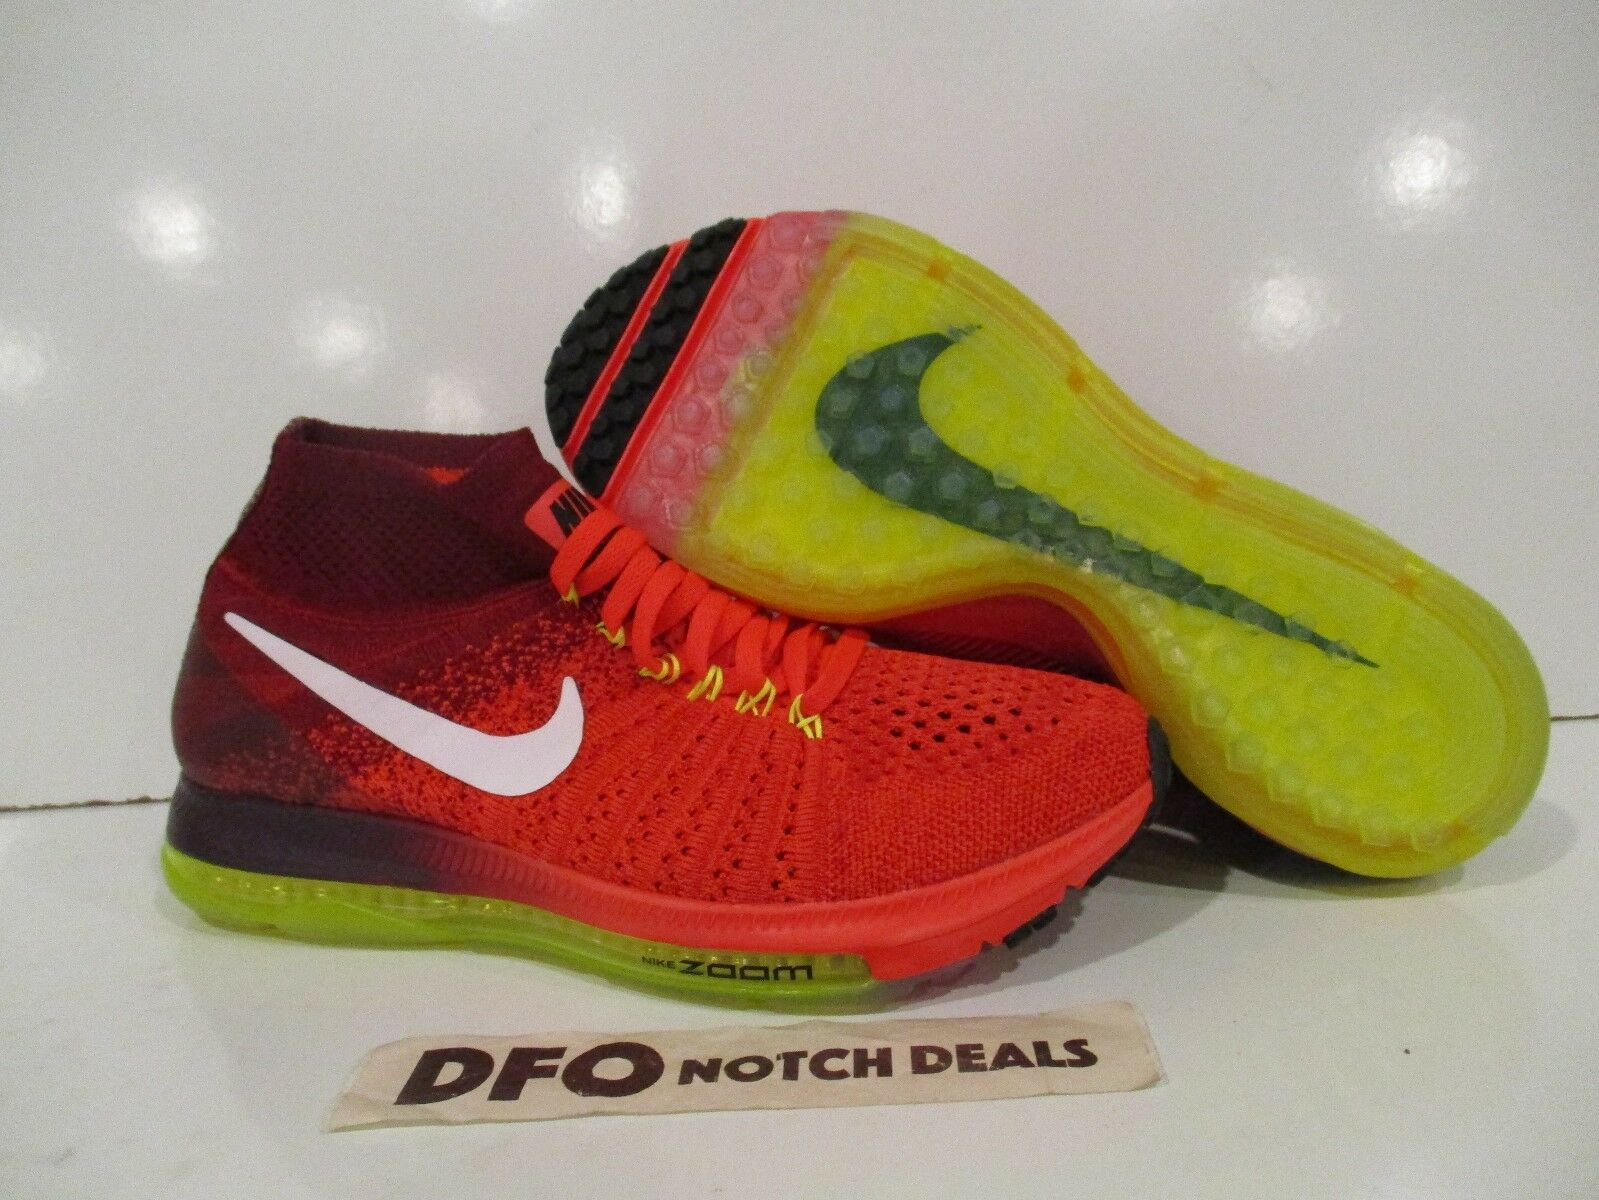 Wouomo Nike Zoom All Out Flyed Sz  7,7.5,11 Bright Crimson Volta 85361 616 NUOVO  grandi risparmi